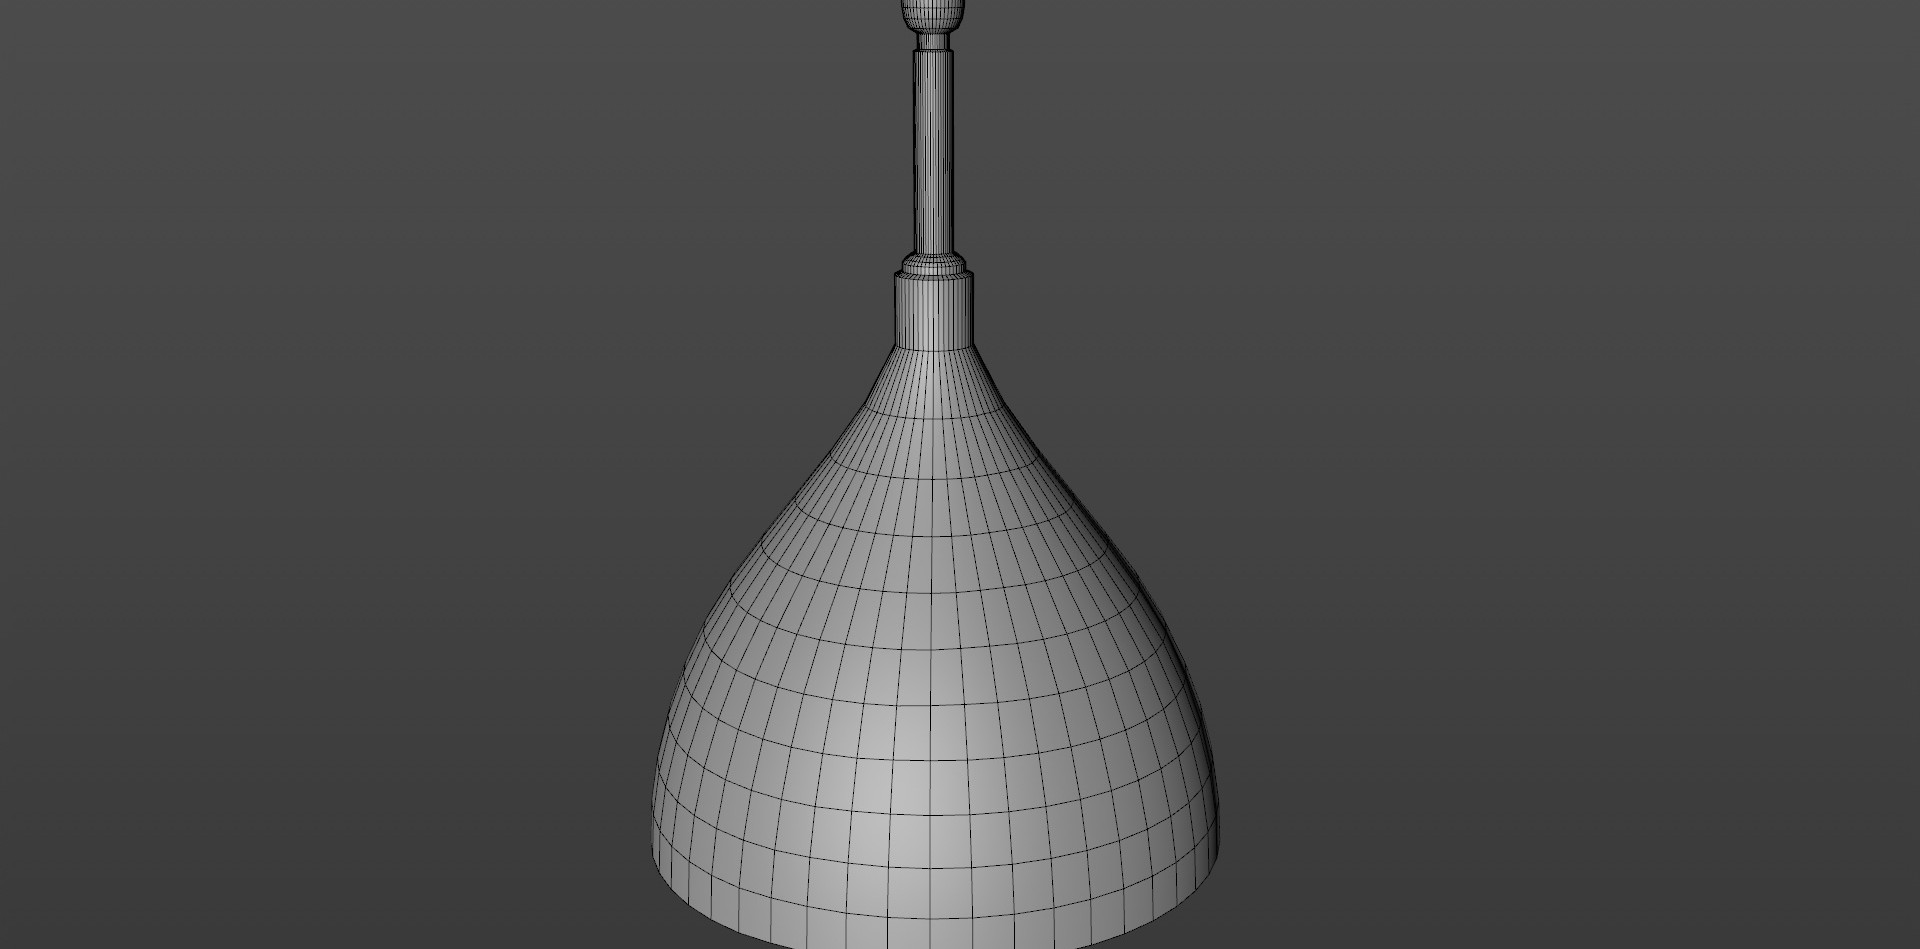 Reshaped the sphere using Soft Selection mode.